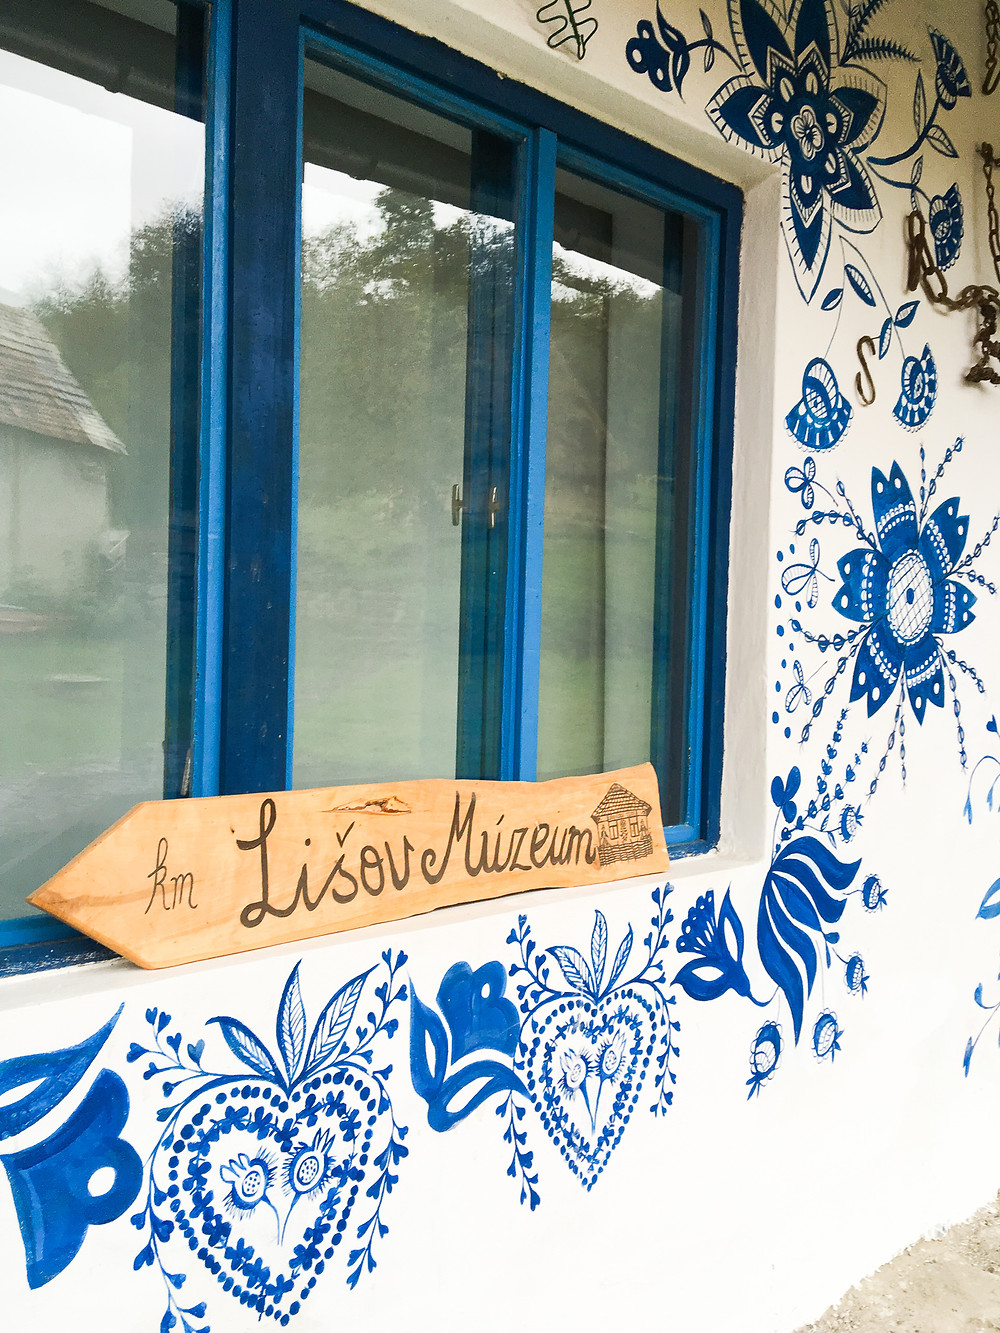 wall painting and Lisov museum made signage